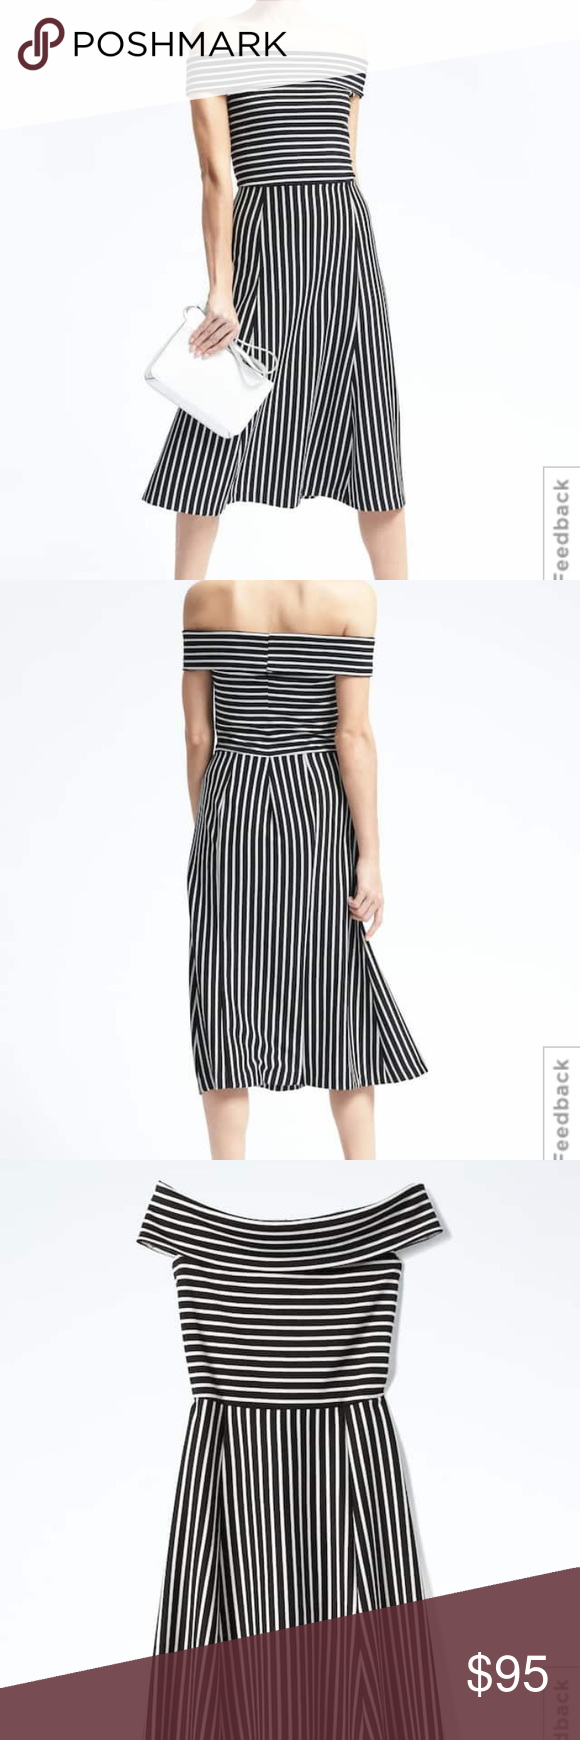 16a3f81f6b04c Banana Republic Striped Off The Shoulder Dress Perfect condition - only  worn once. Black and